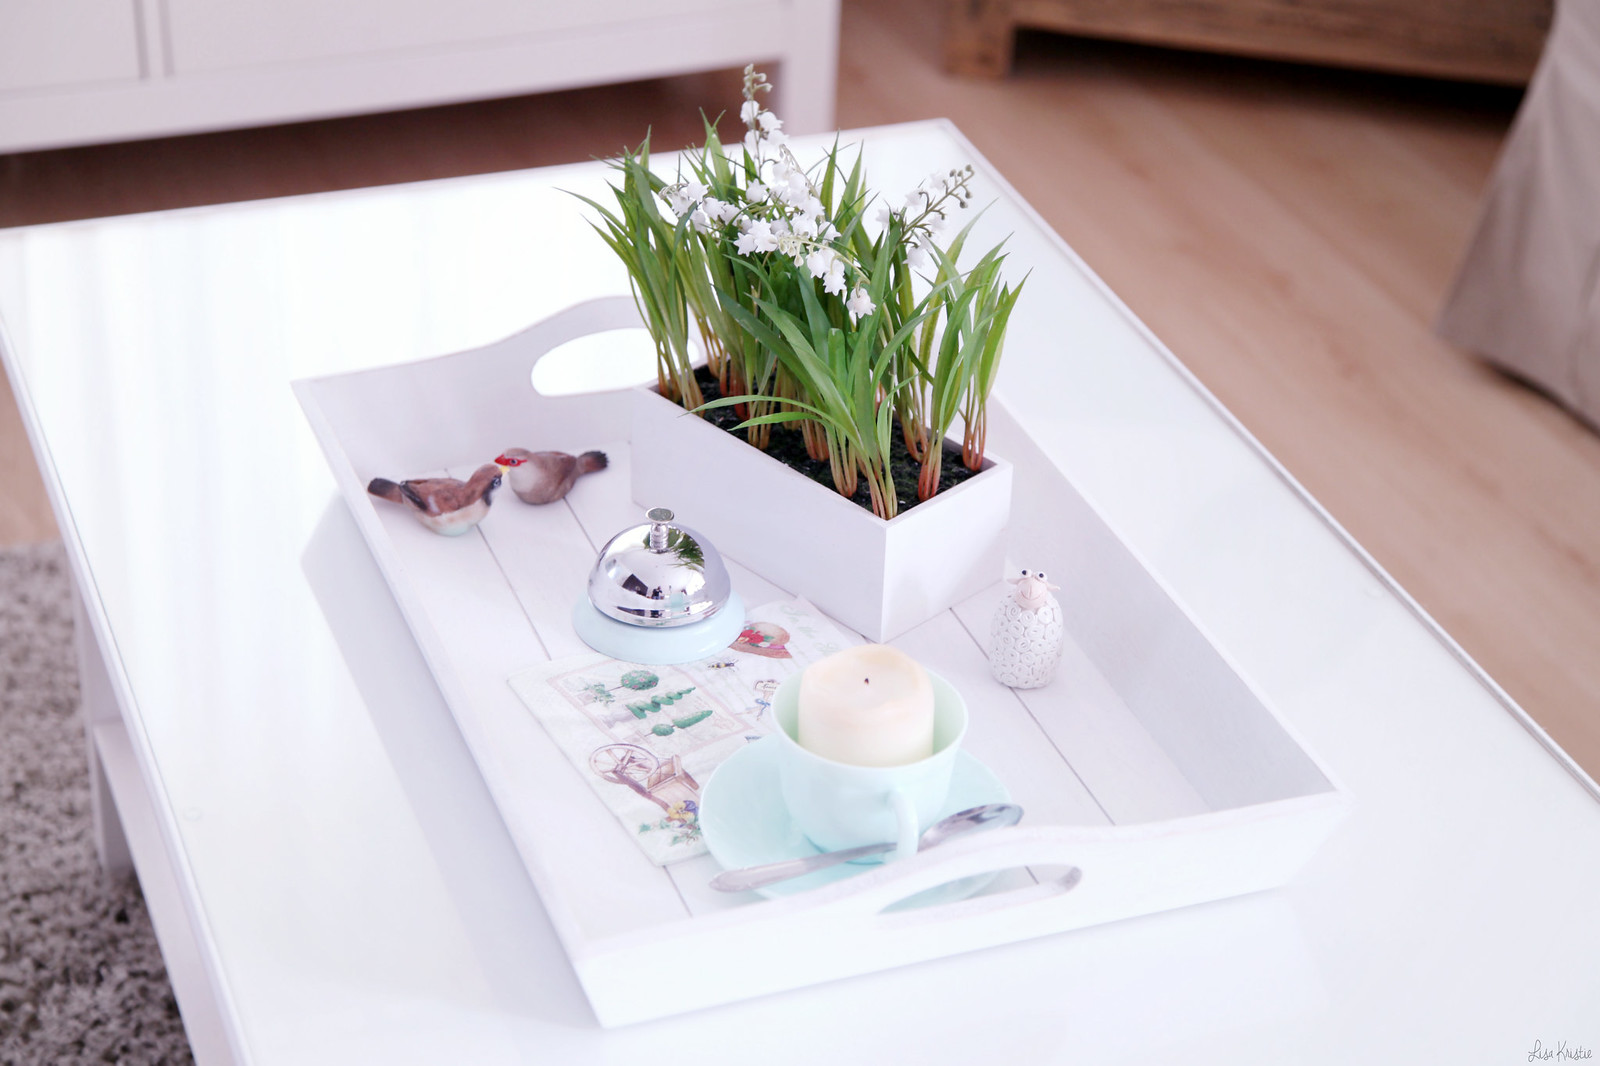 Spring decoration tray coffee table living room interior home house wooden white teacup fake flowers lily of the valley lilly pale pastel shabby chic european birds sheep candle in cup spoon